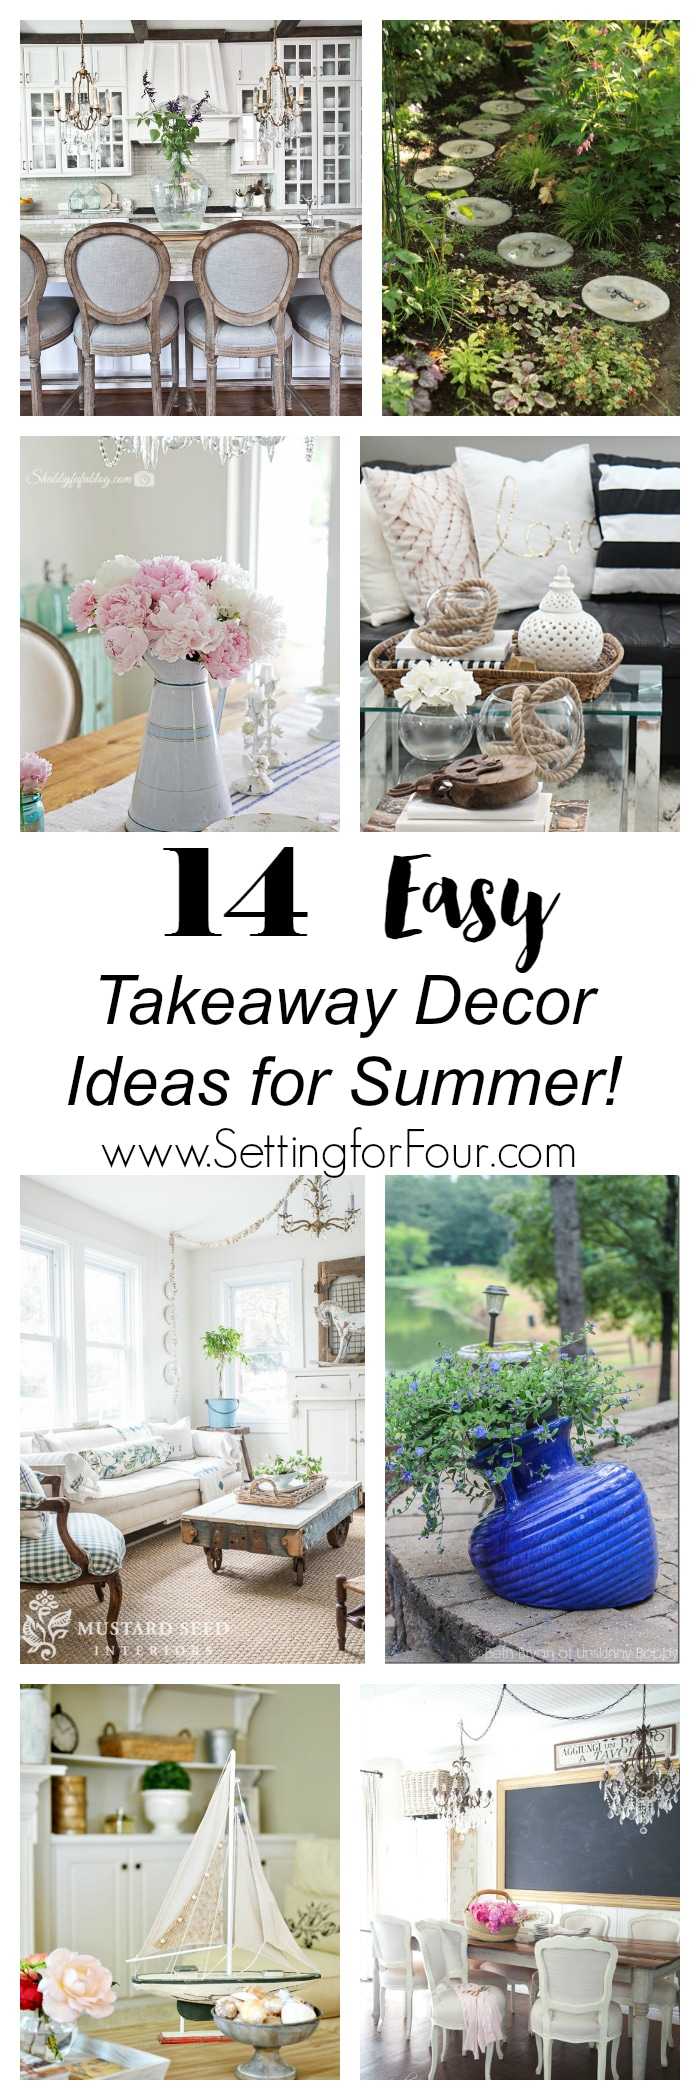 See 14 EASY Takeaway Decor Ideas for summer from the bHome bloggers - real people with real homes! www.settingforfour.com